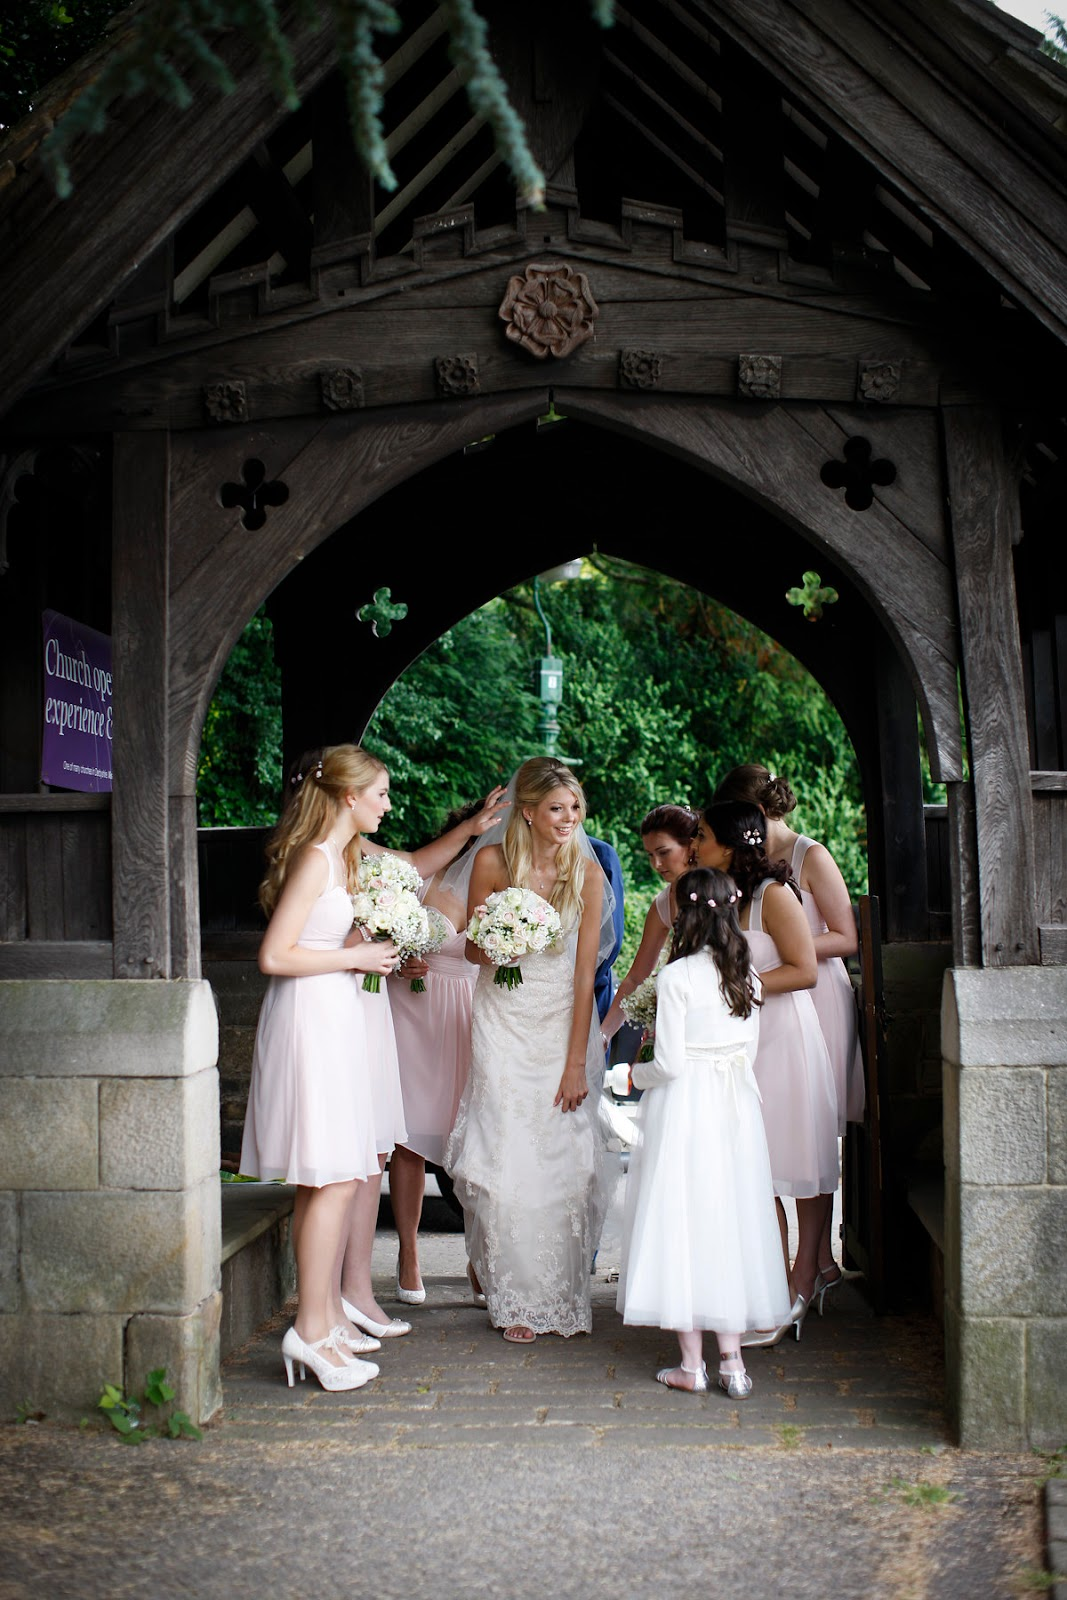 Our Wedding: The Ceremony